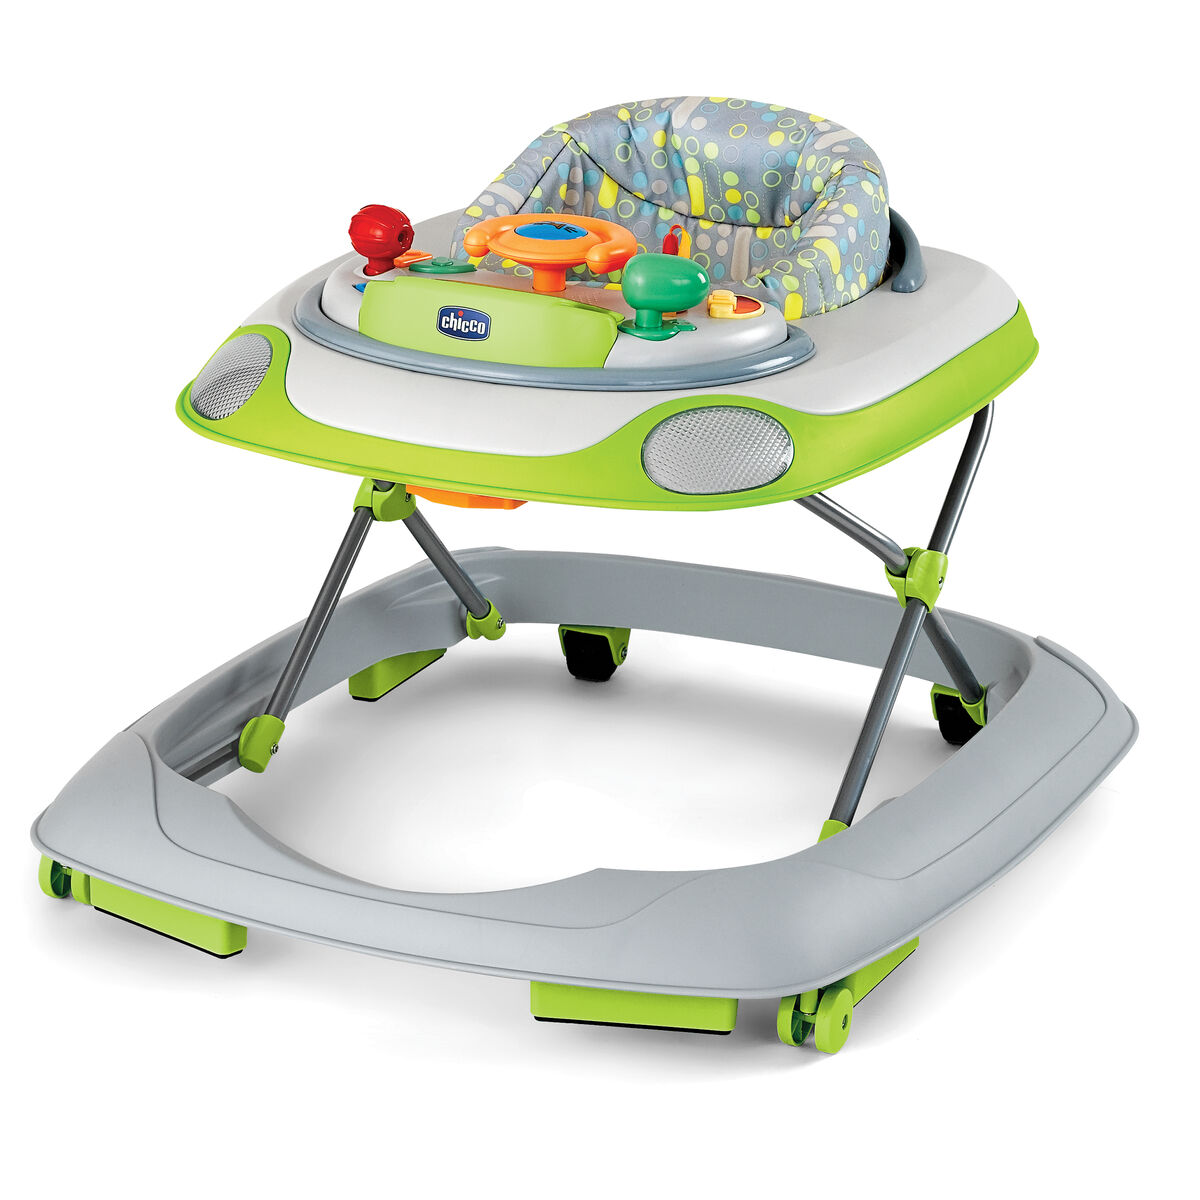 The Disney Baby MICKEY MOUSE Baby to Big Kid Bundle grows with baby's developmental stages from a newborn in the infant rocker, to encouraging walking skills in the walker, and up to 40 lbs as the perfect toddler seat!